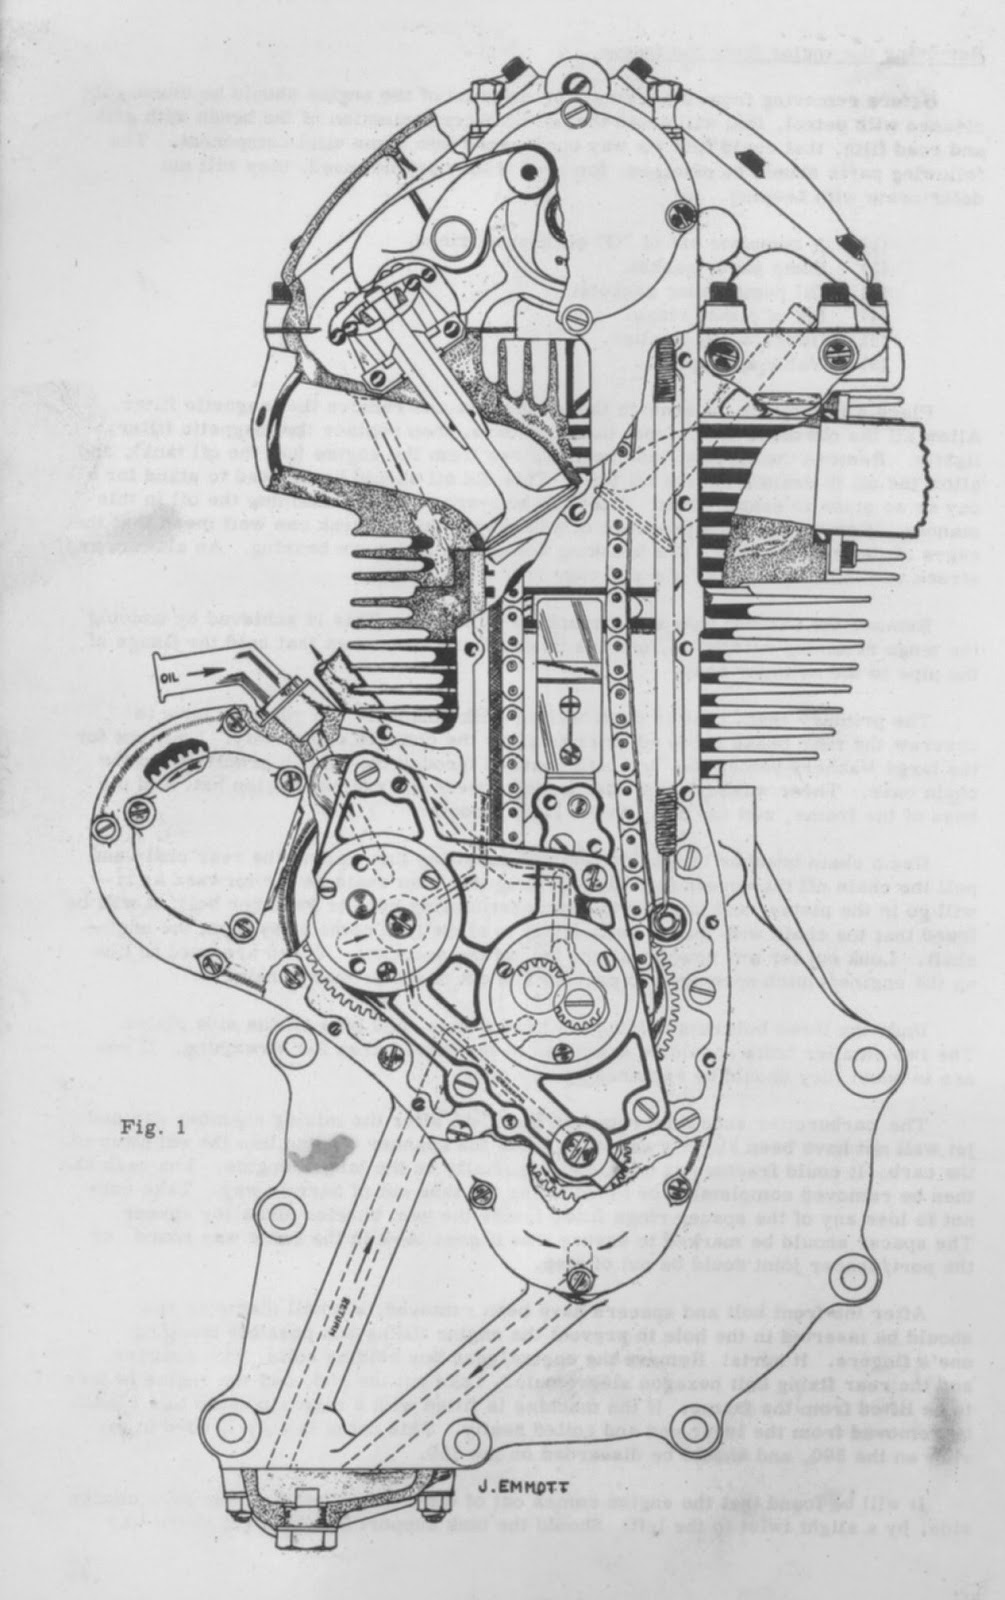 Matchless Motorcycle Engine Diagram Wiring Diagrams Ajs With Snowmobile